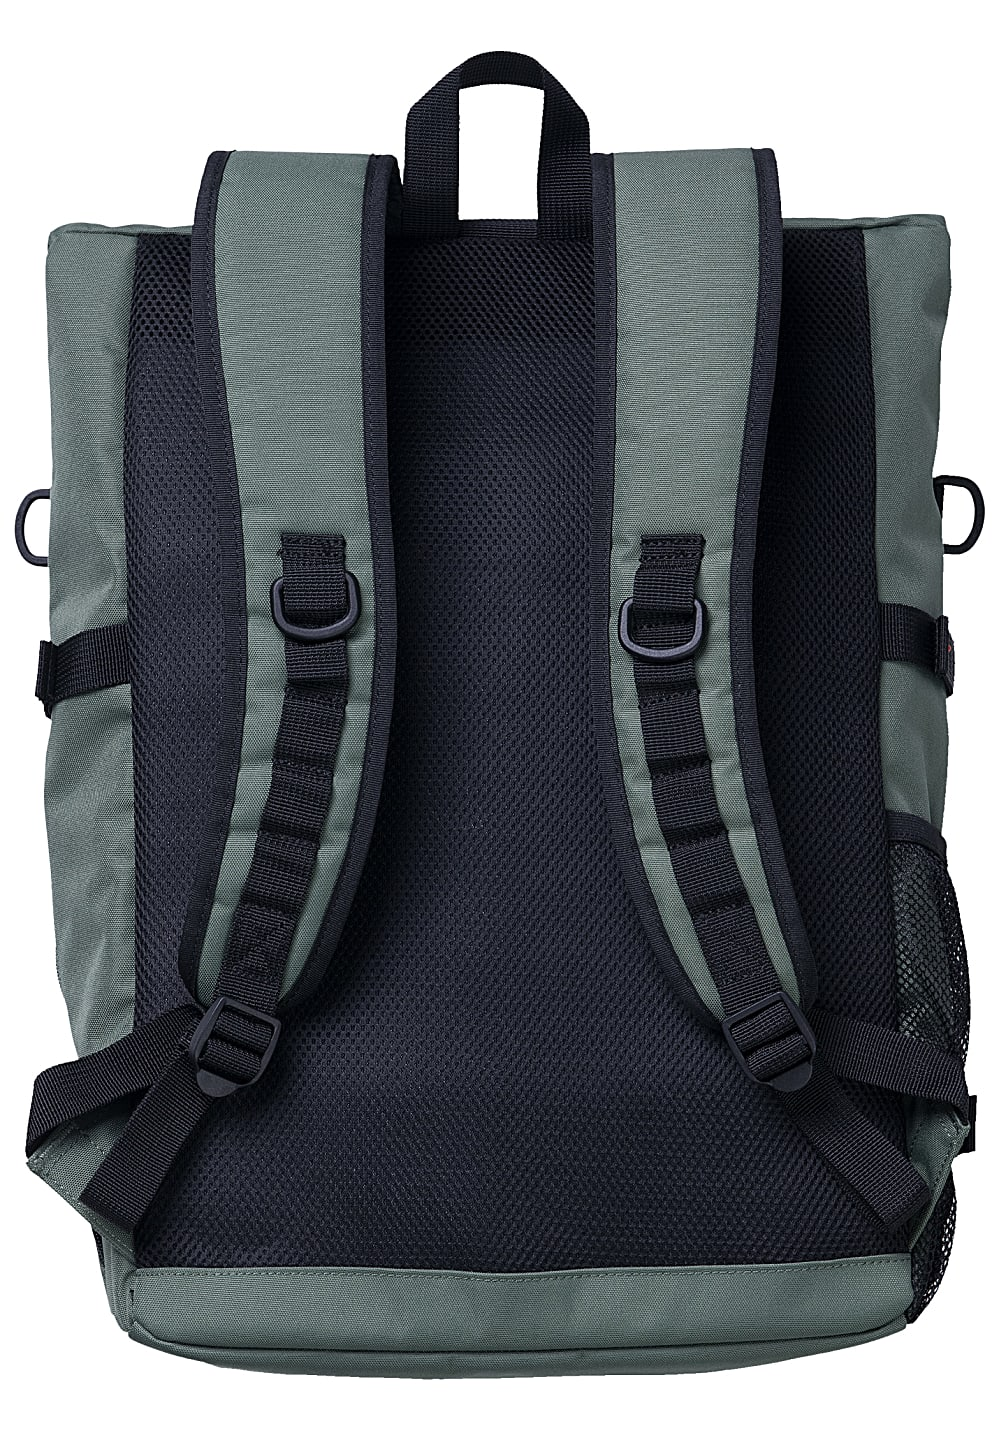 carhartt WIP Philis 22L - Backpack - Green - Planet Sports